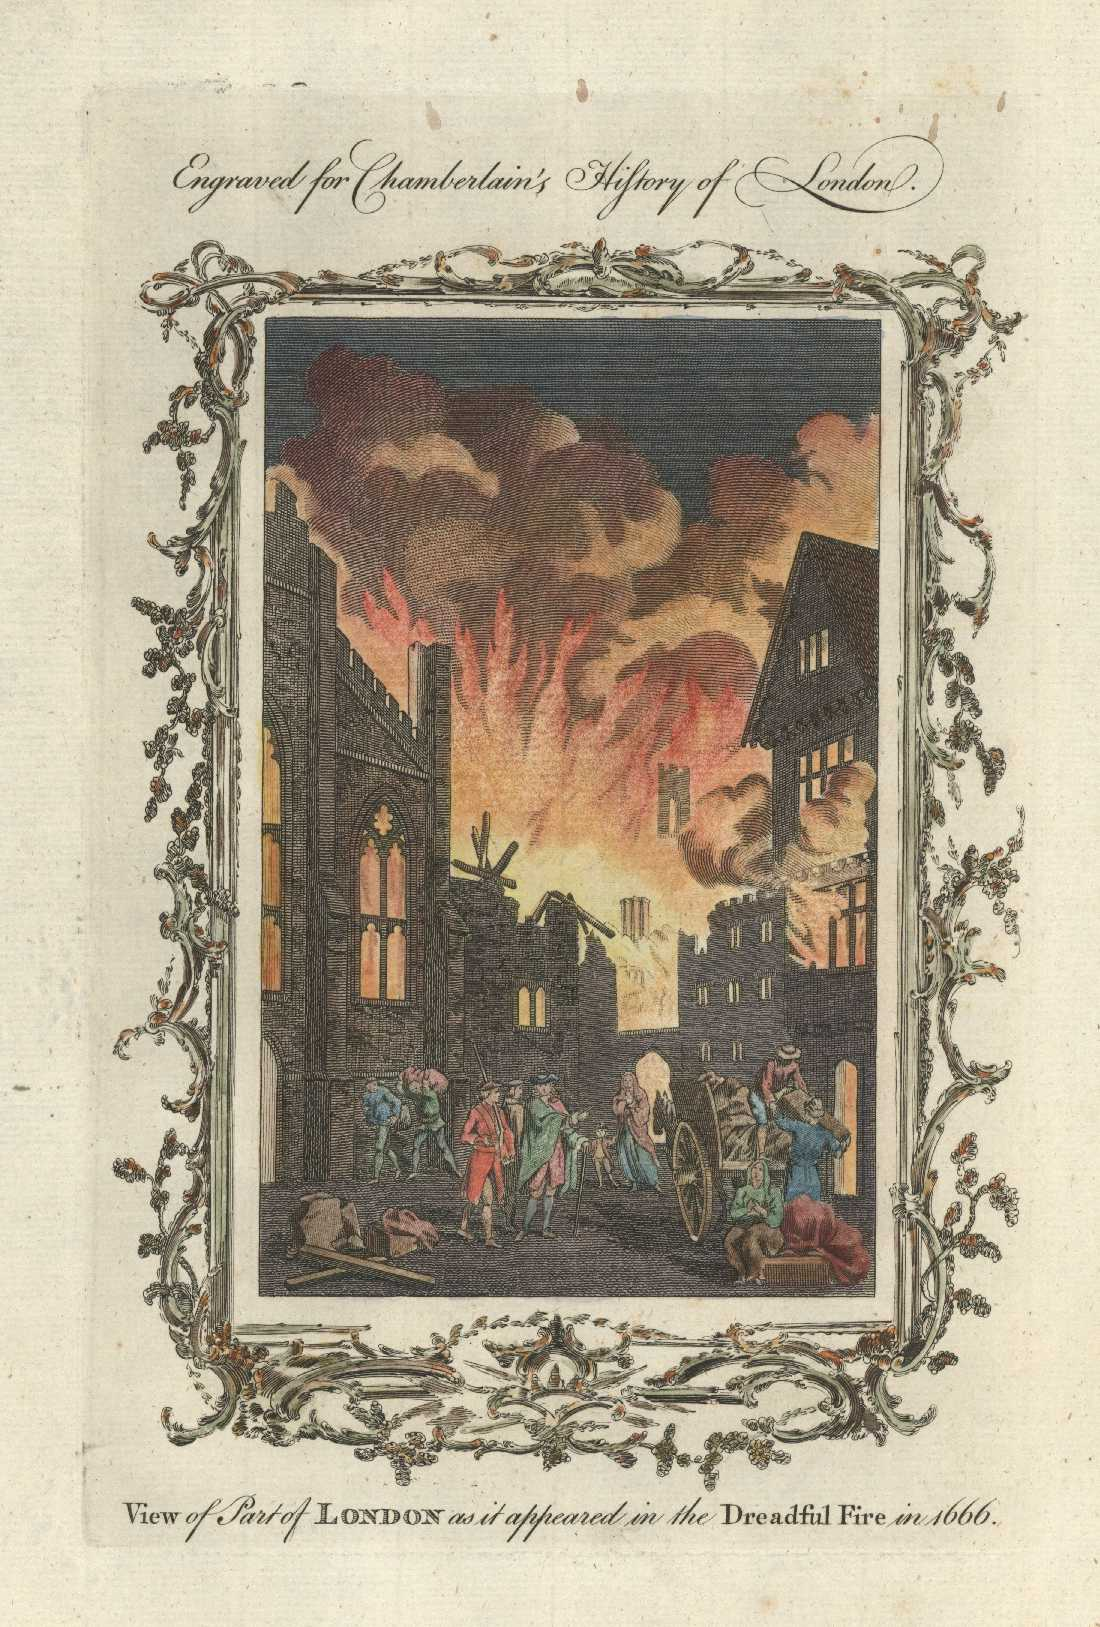 London Fire. The dreadful Fire in 1666. Chamberlain c1773.